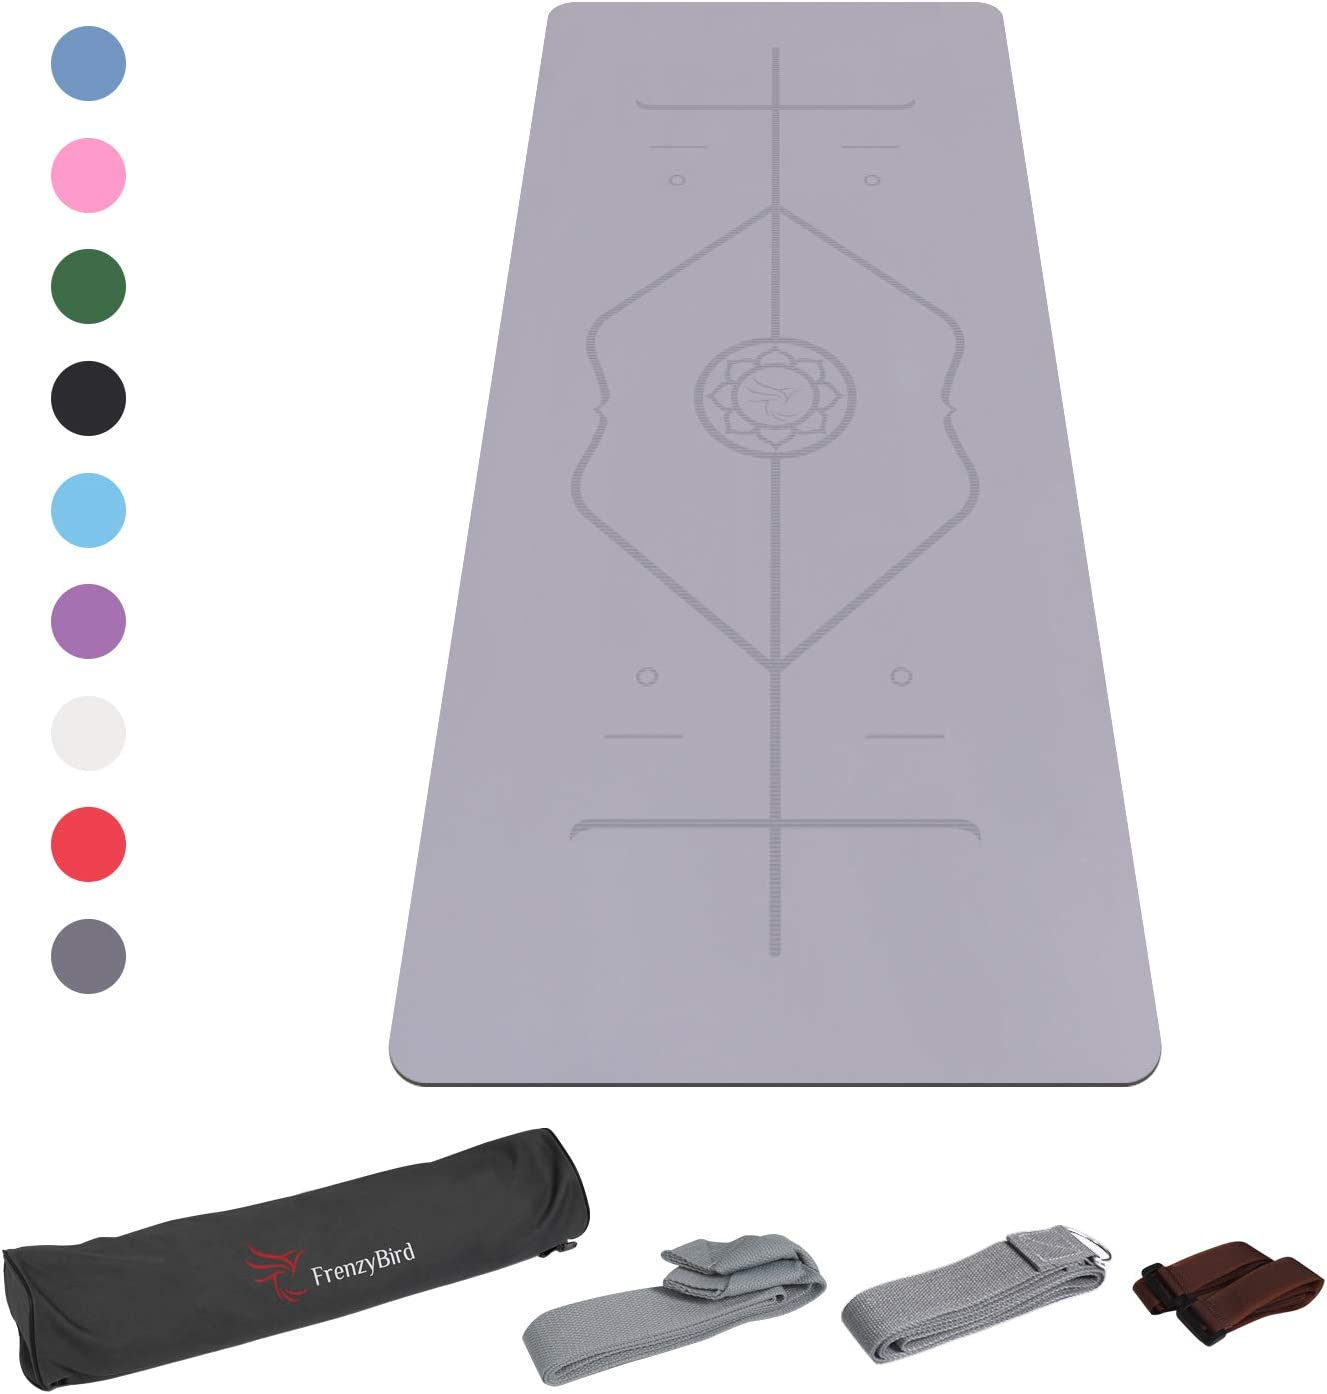 FrenzyBird 5mm Thick PU Rubber Yoga Mat with Body Alignment System,Oxford Mat Bag and Strap,Wet Absorbance,for All Types of Yoga and Pilates